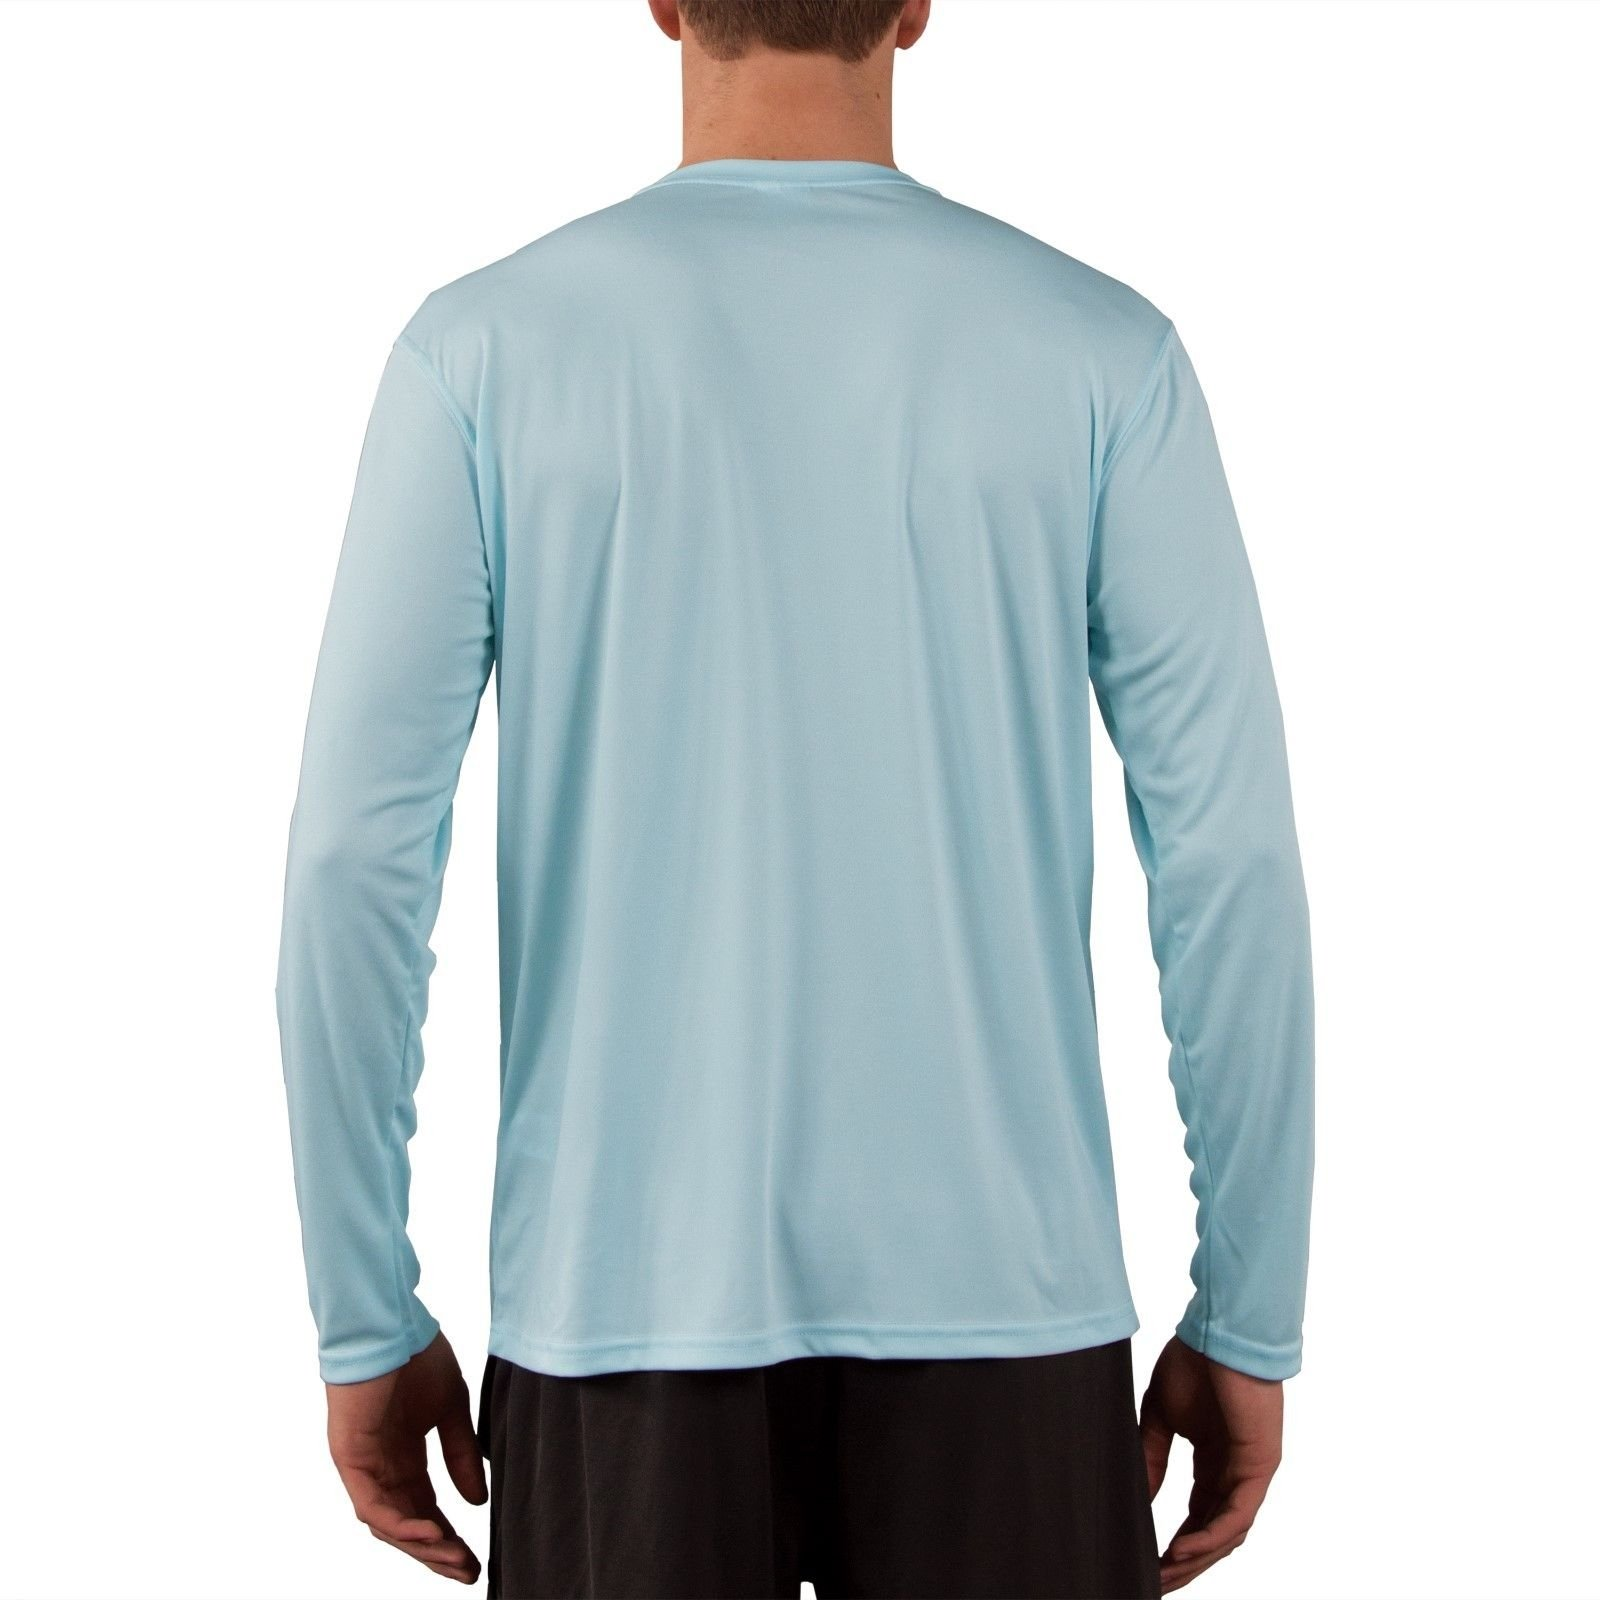 vapor apparel men 39 s upf 50 uv sun protection long sleeve